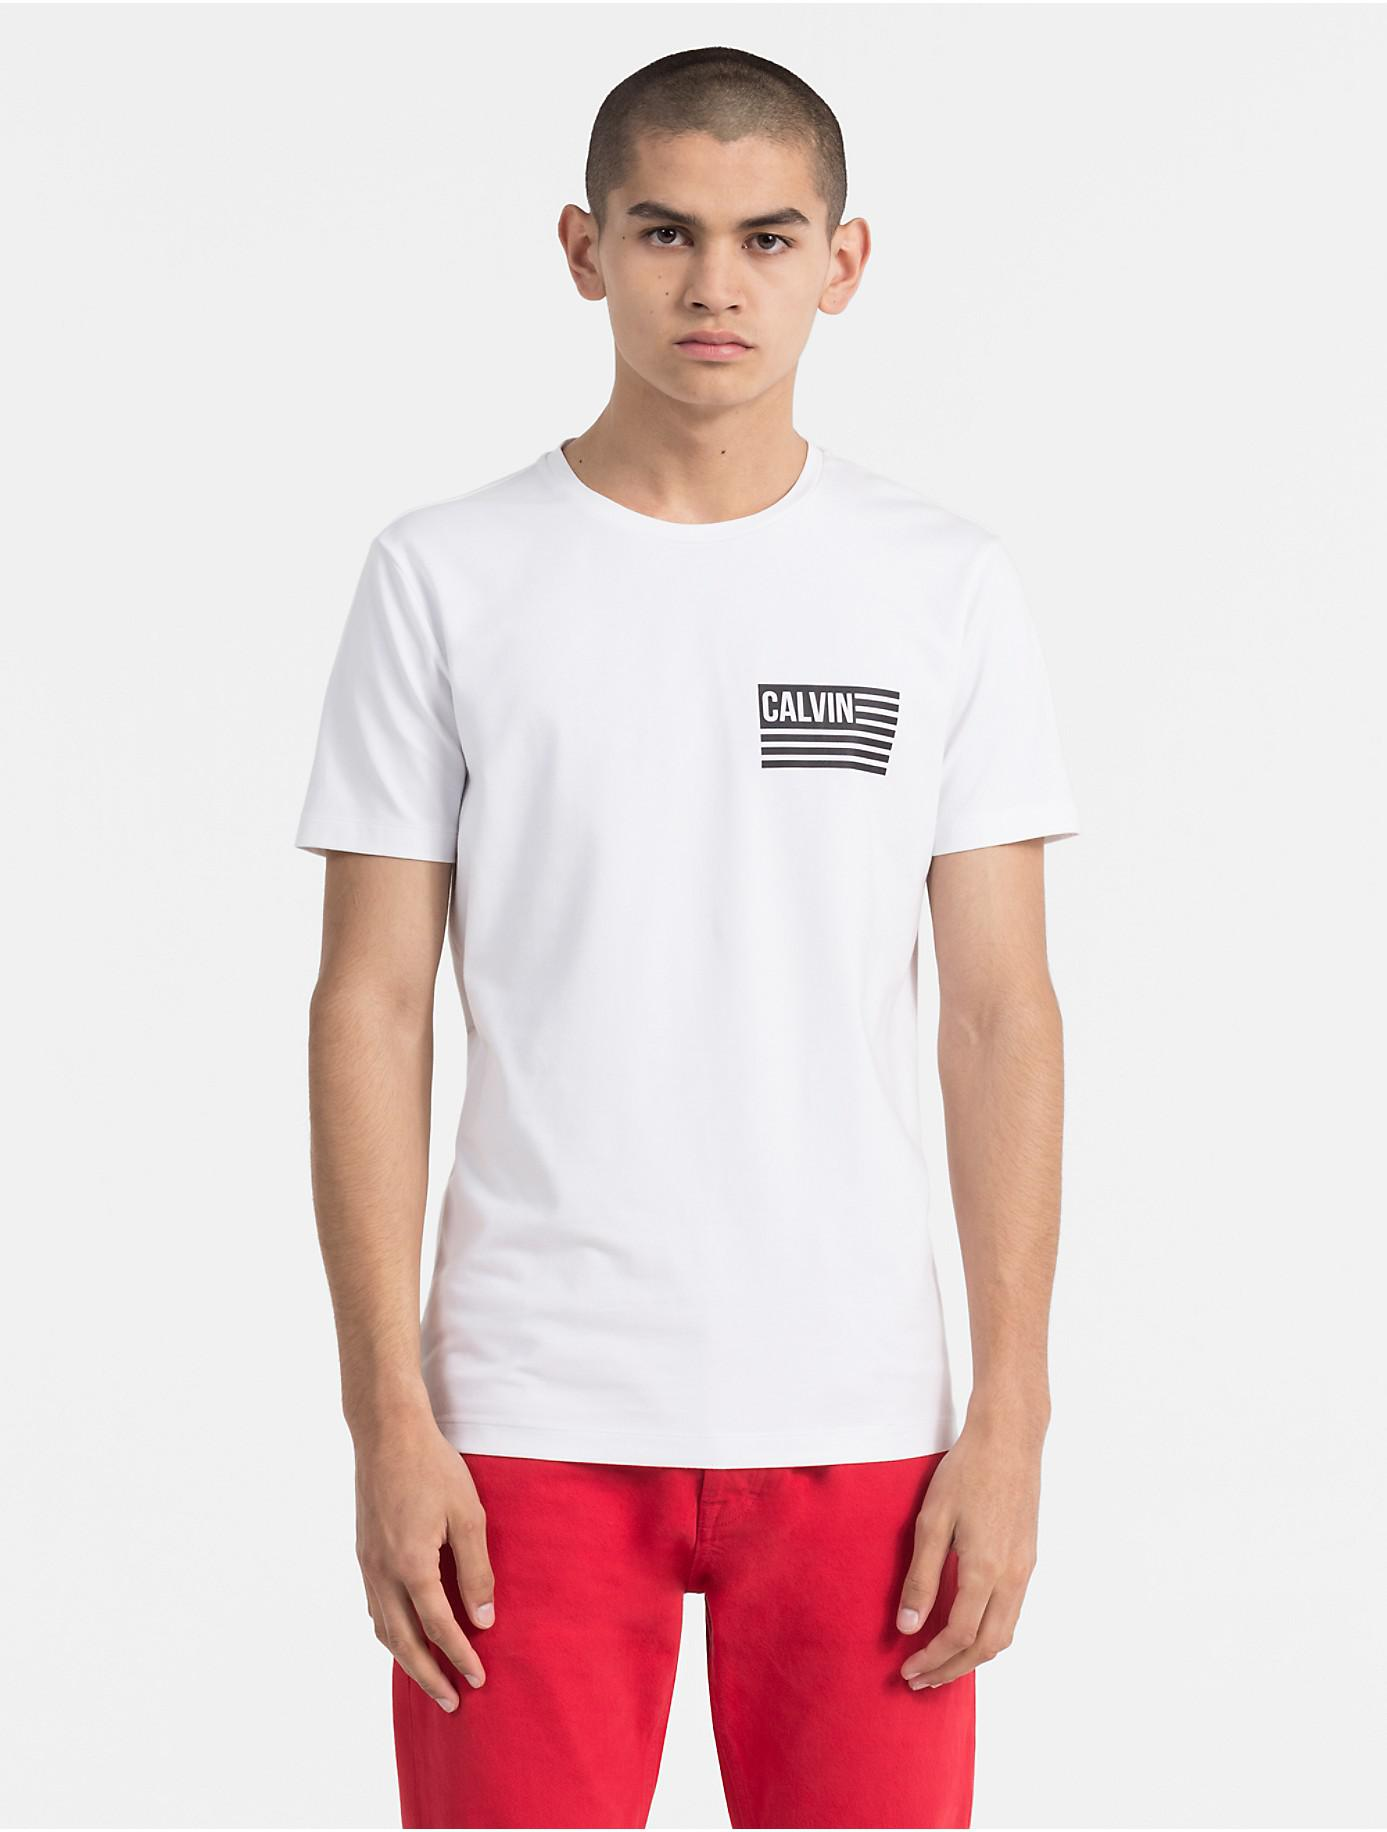 Clearance Sale Online Slim Flag Logo T-shirt Calvin Klein Under 50 Dollars 5B7CaW